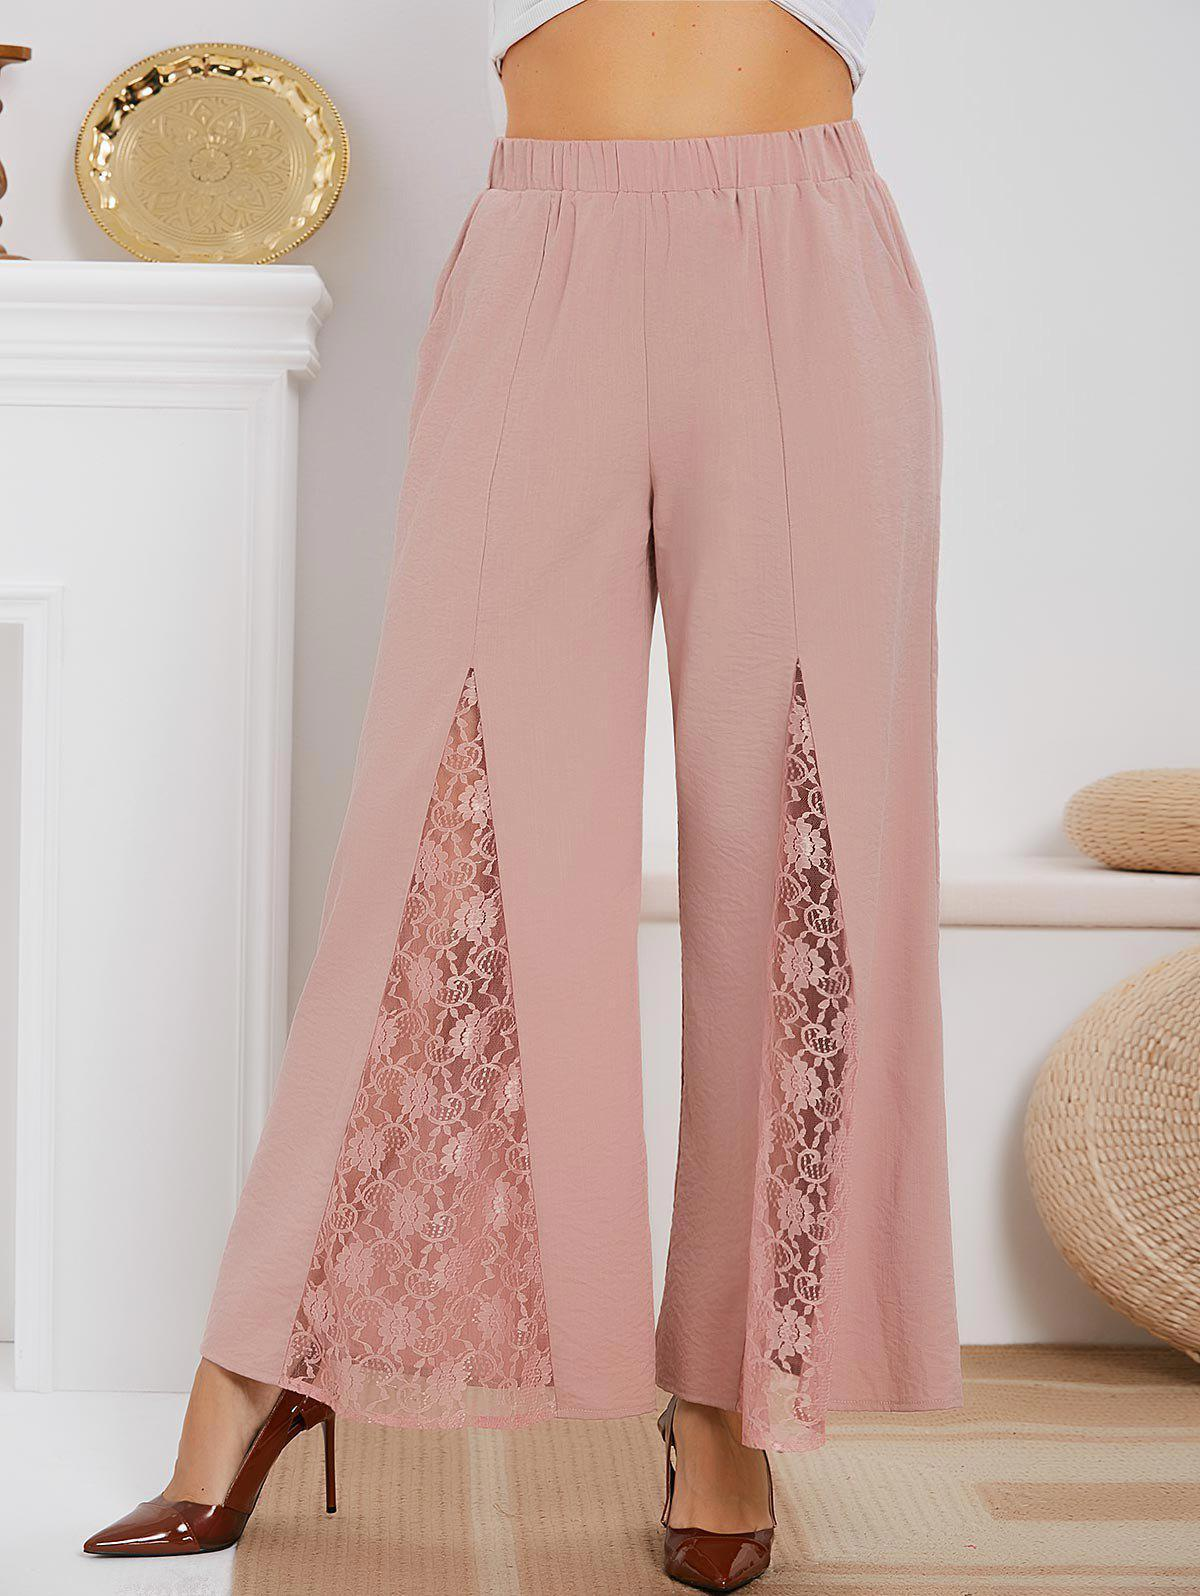 Chic High Waisted Lace Panel Plus Size Boot Cut Pants